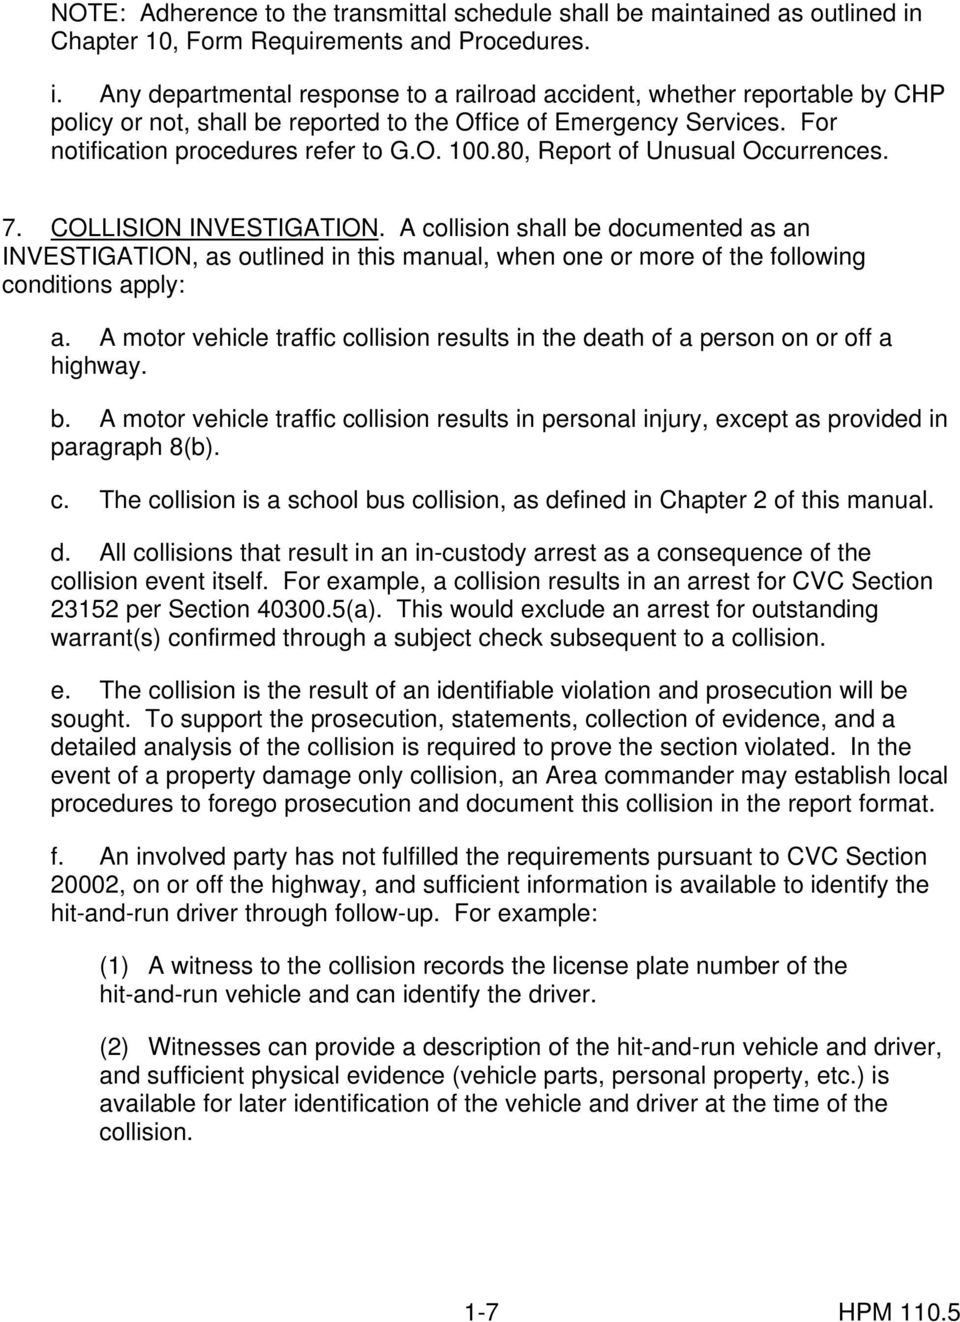 For notification procedures refer to G.O. 100.80, Report of Unusual  Occurrences. 7. COLLISION